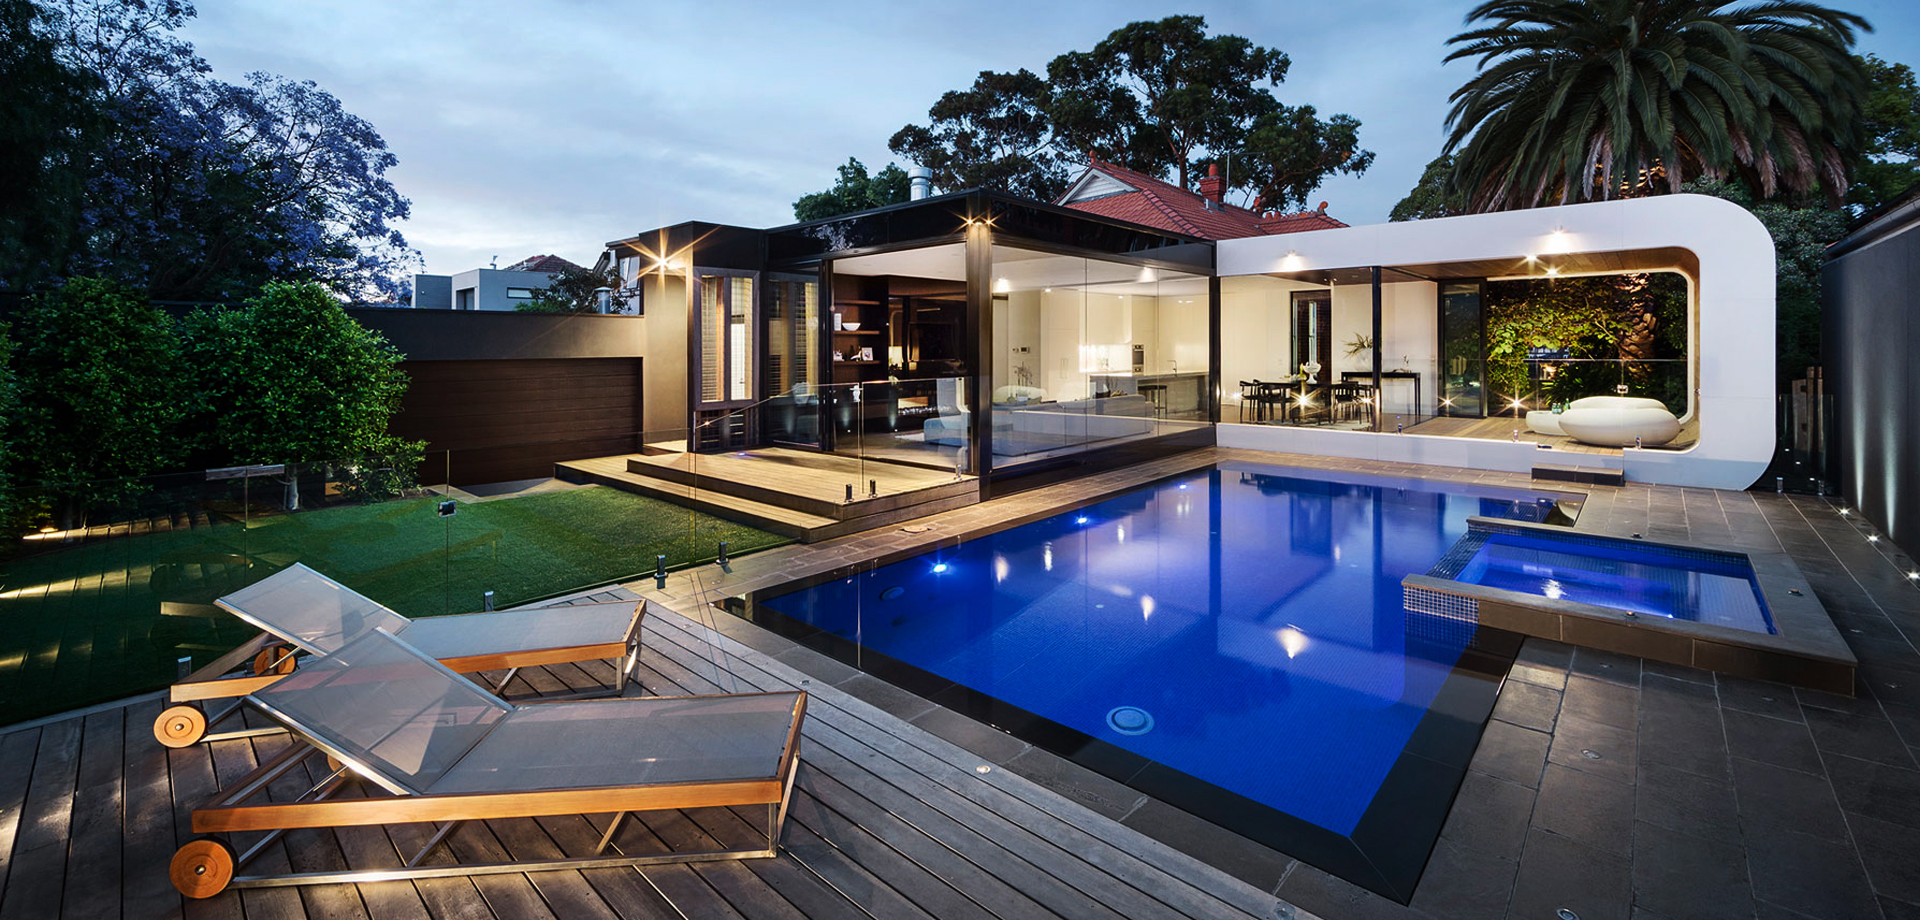 Swimming Pool And Spa Design Image May Contain Tree Sky Outdoor Nature